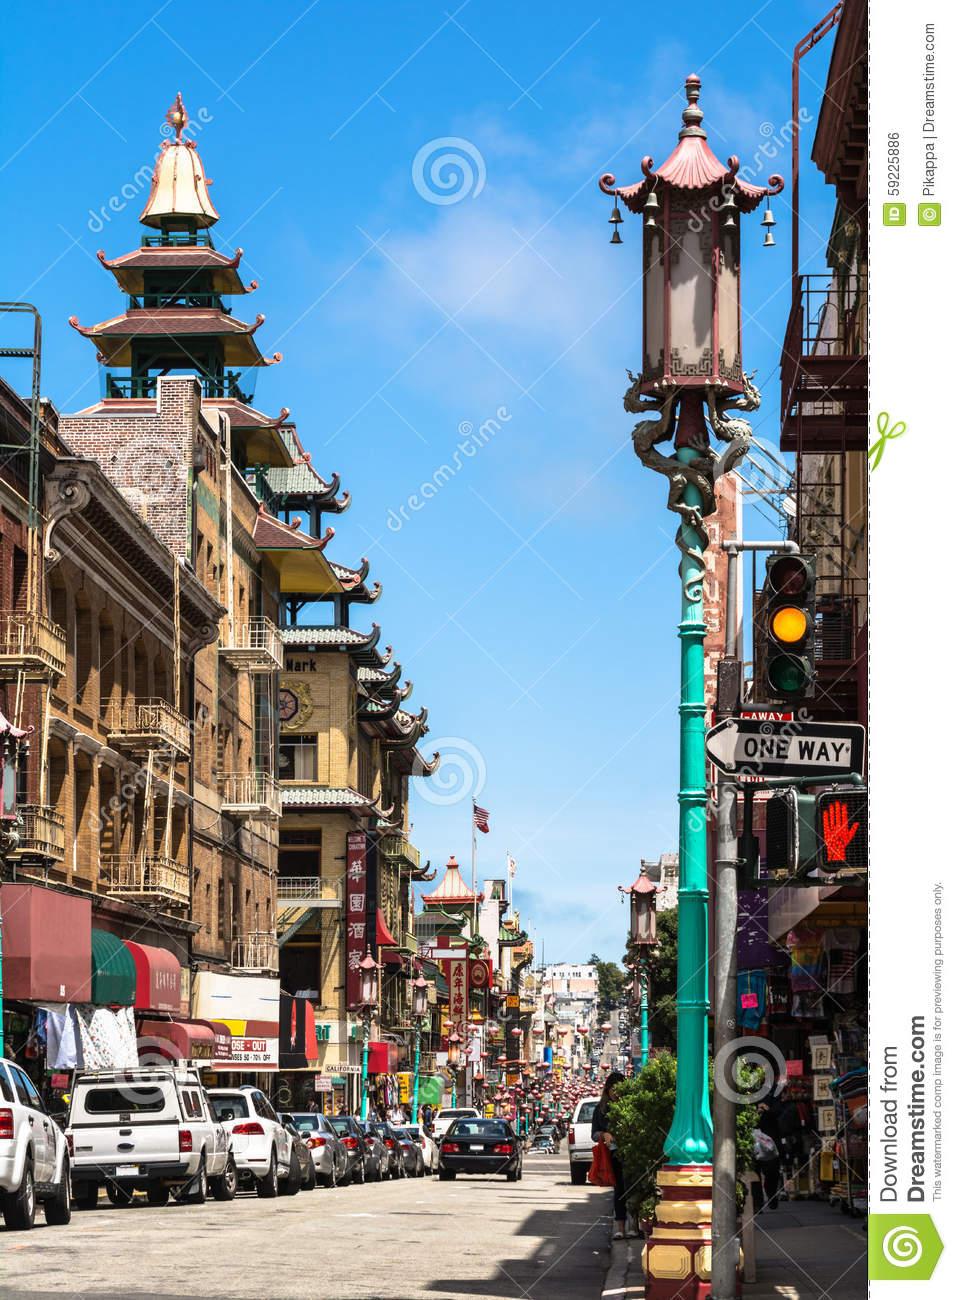 Grant Avenue en Chinatown, San Francisco